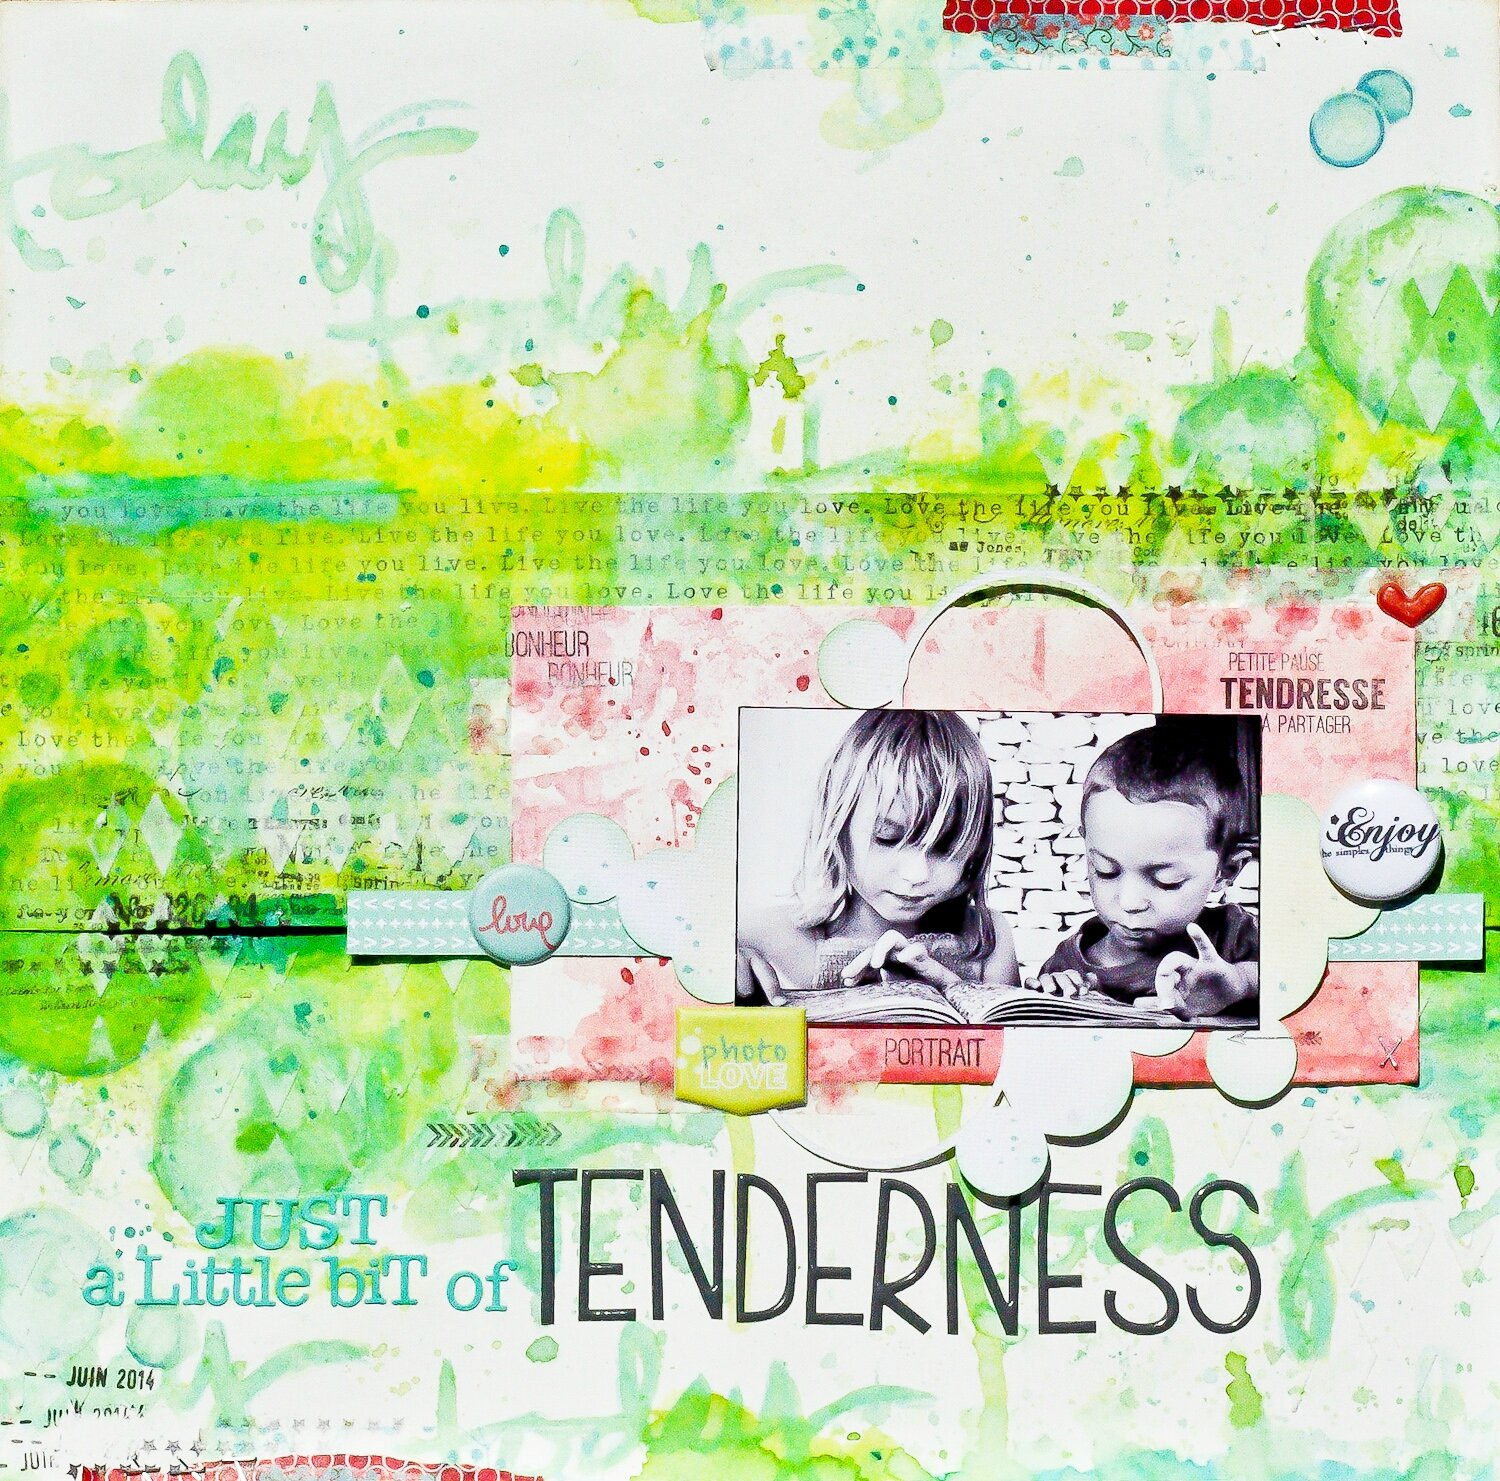 A little bit of Tenderness...